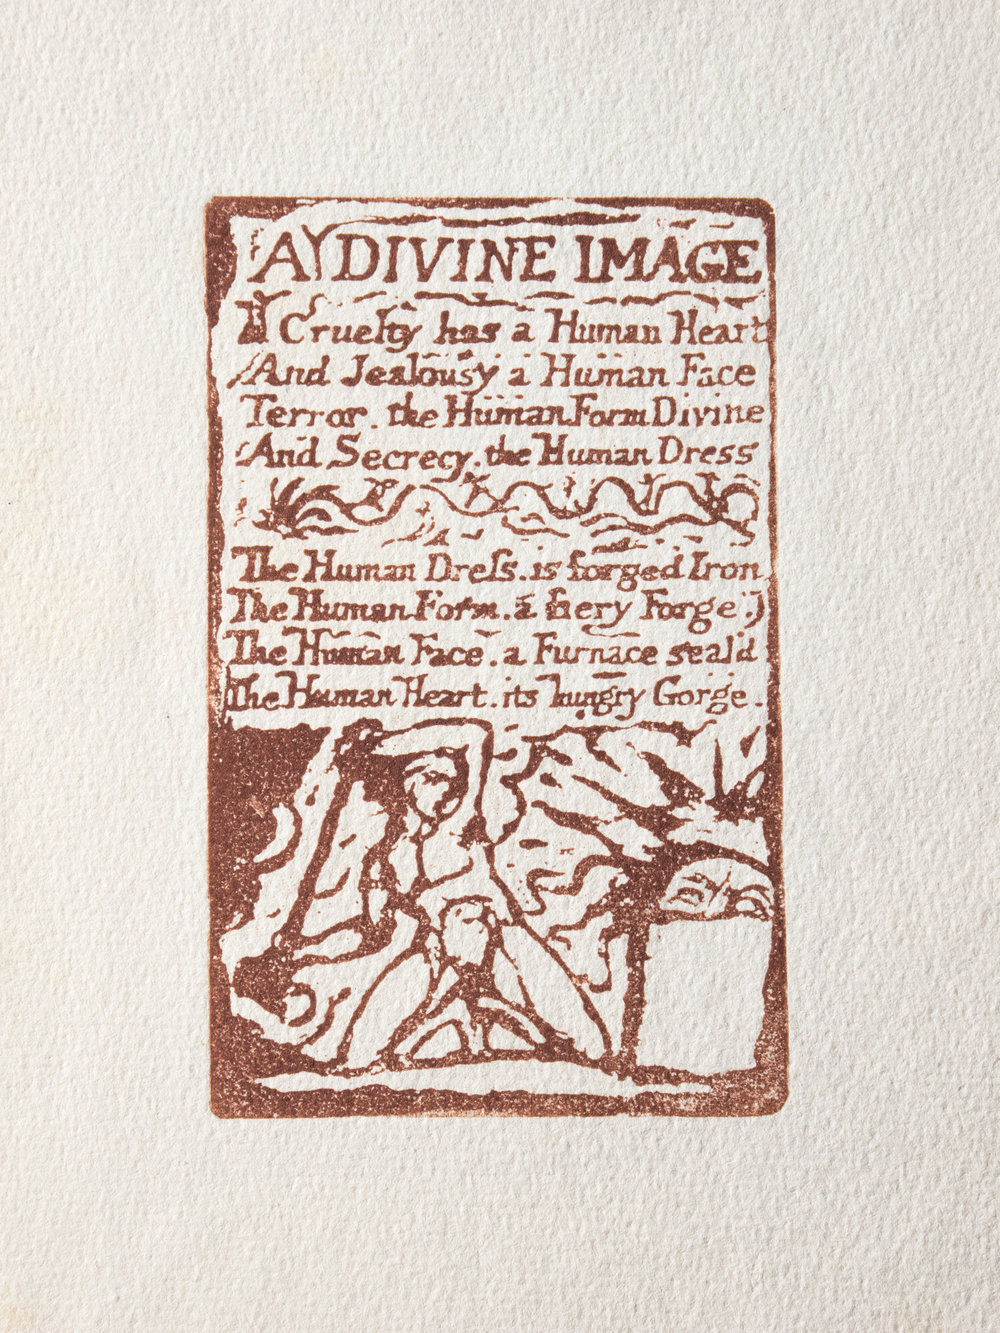 Copy of A Divine Image printed in red ink